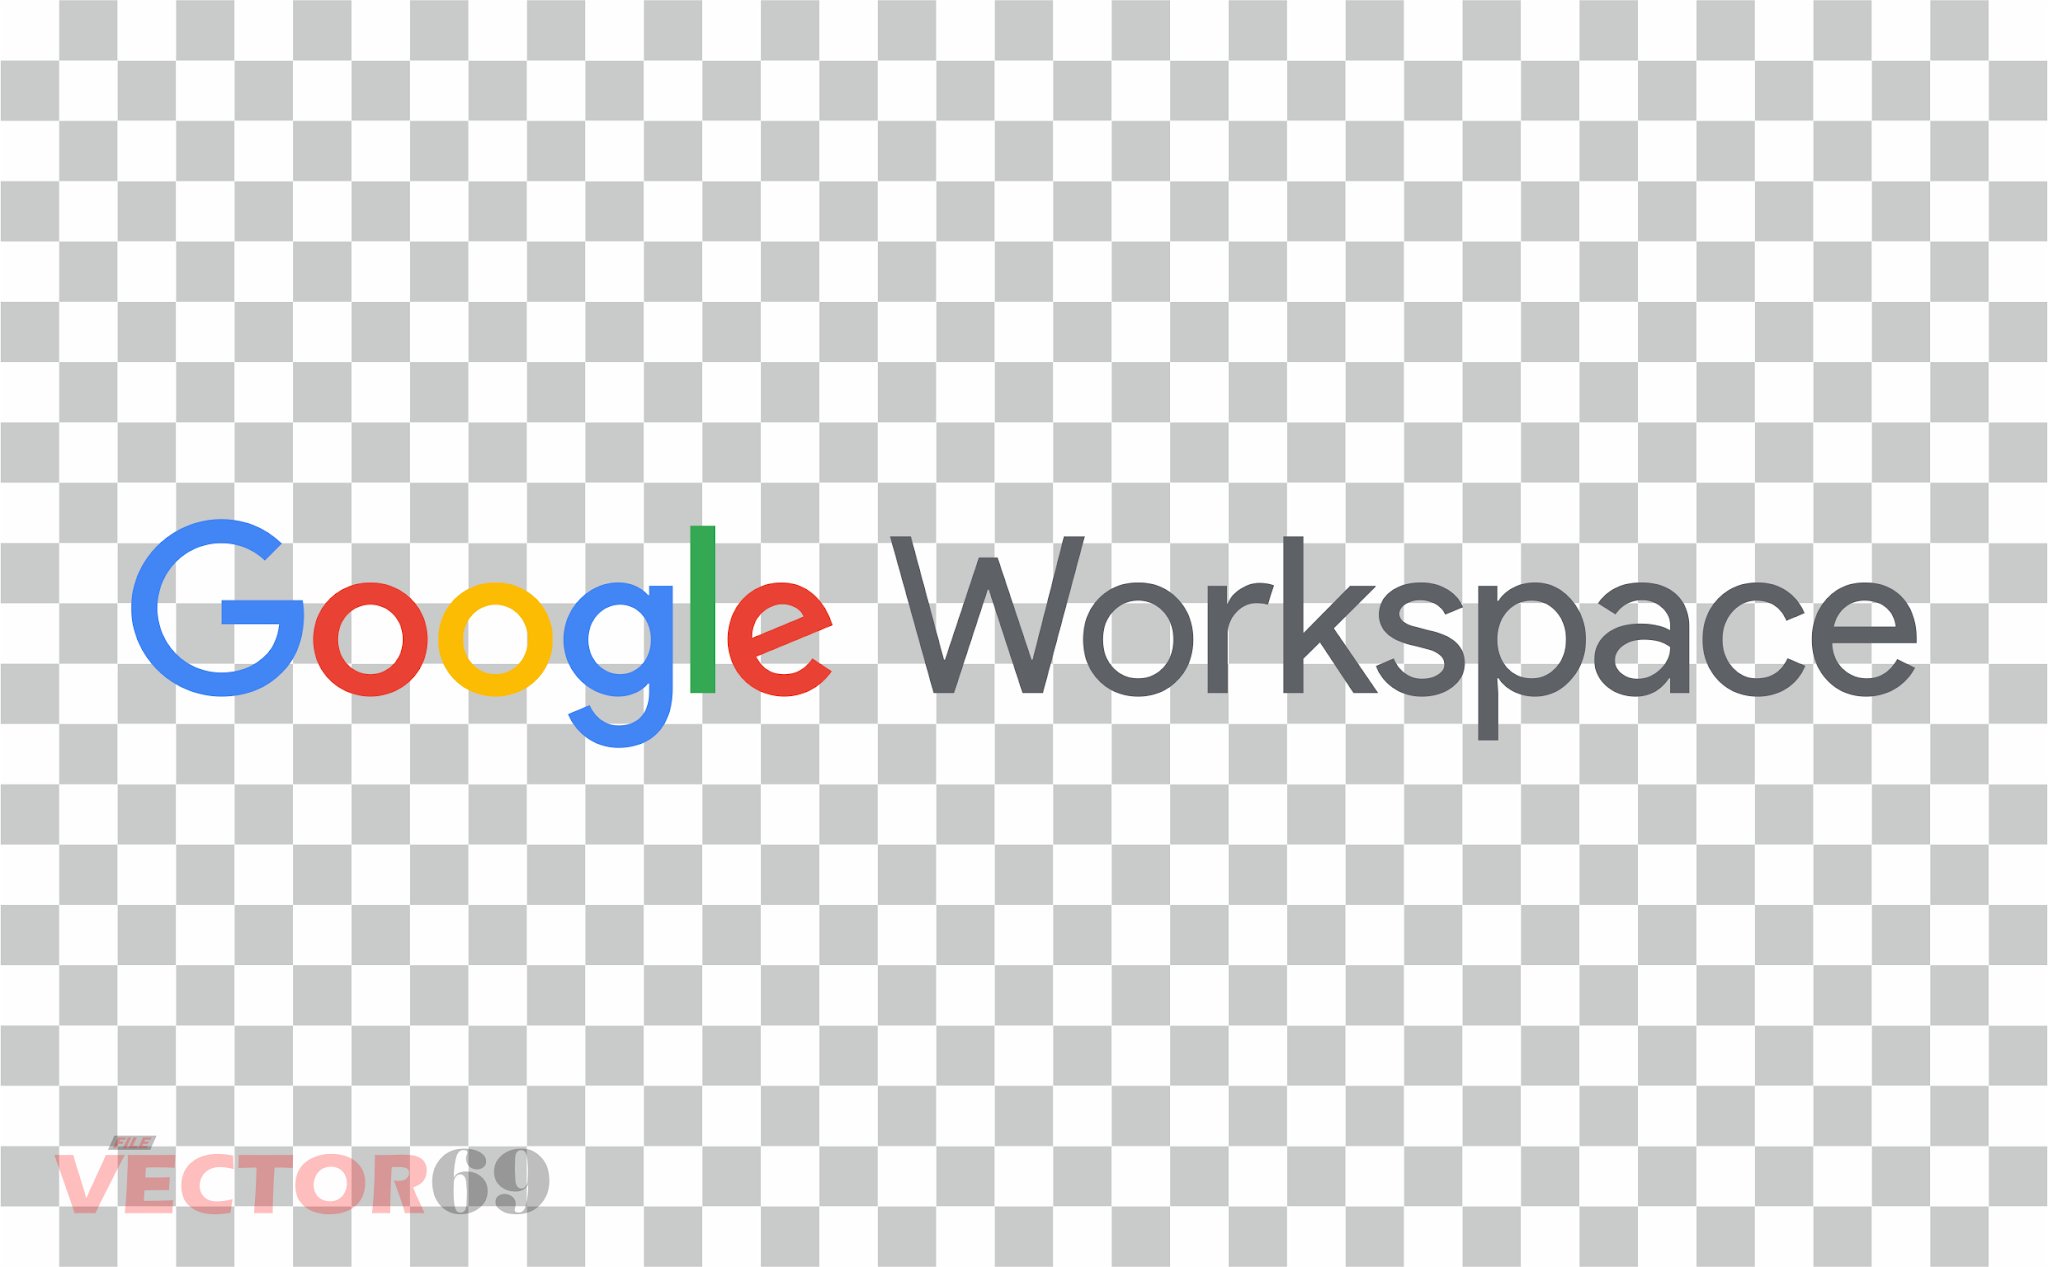 Google Workspace Logo - Download Vector File PNG (Portable Network Graphics)